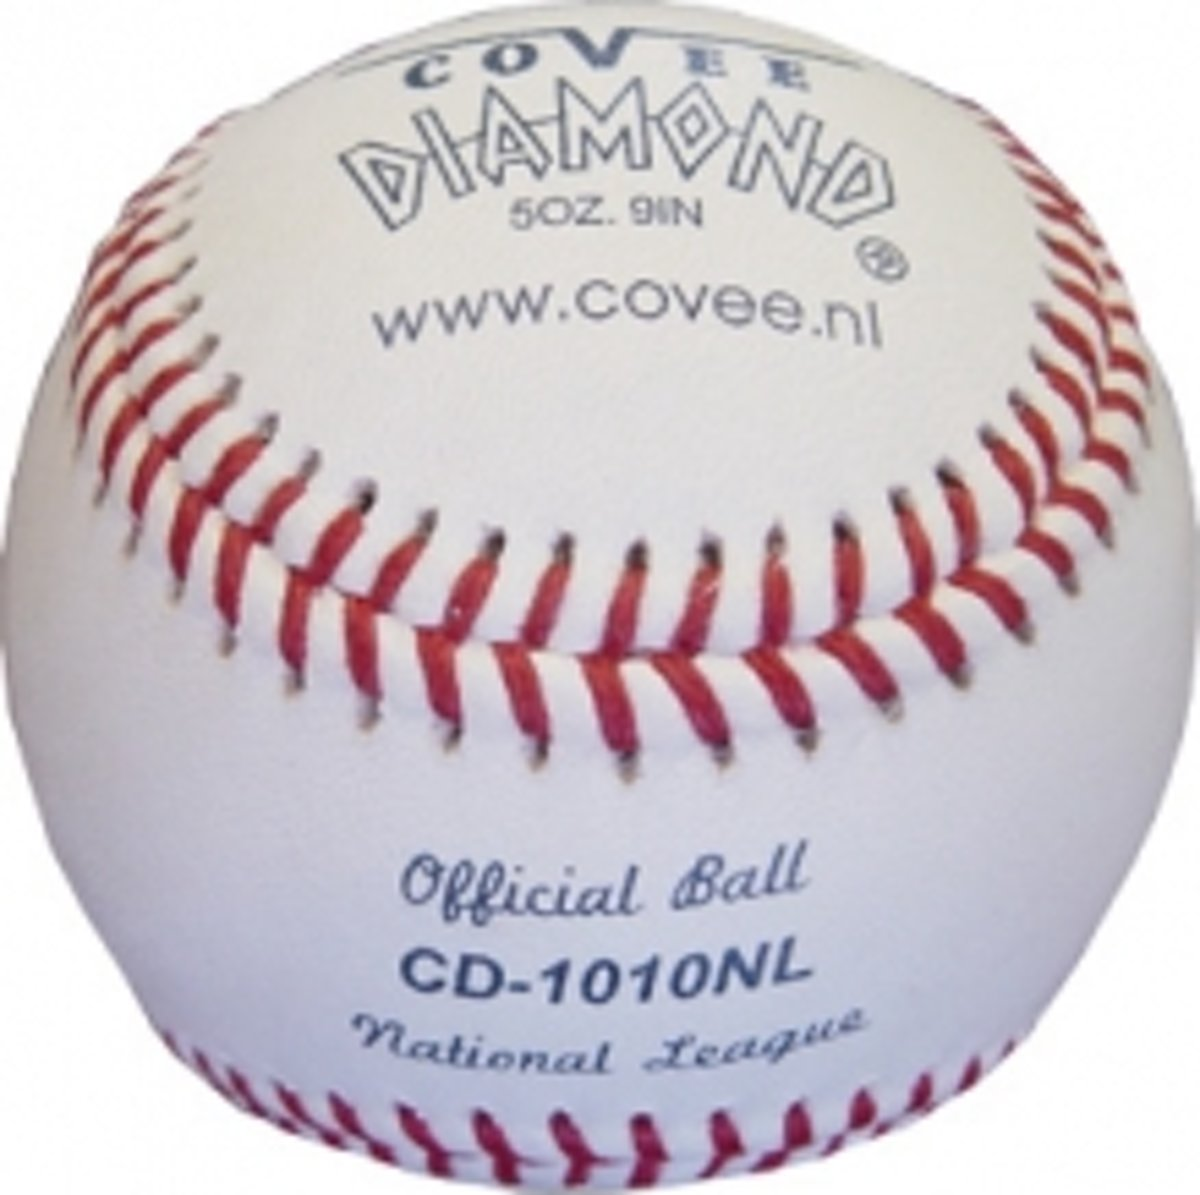 Covee/Diamond CD-1010NL Honkbal: Leder  (1st.)